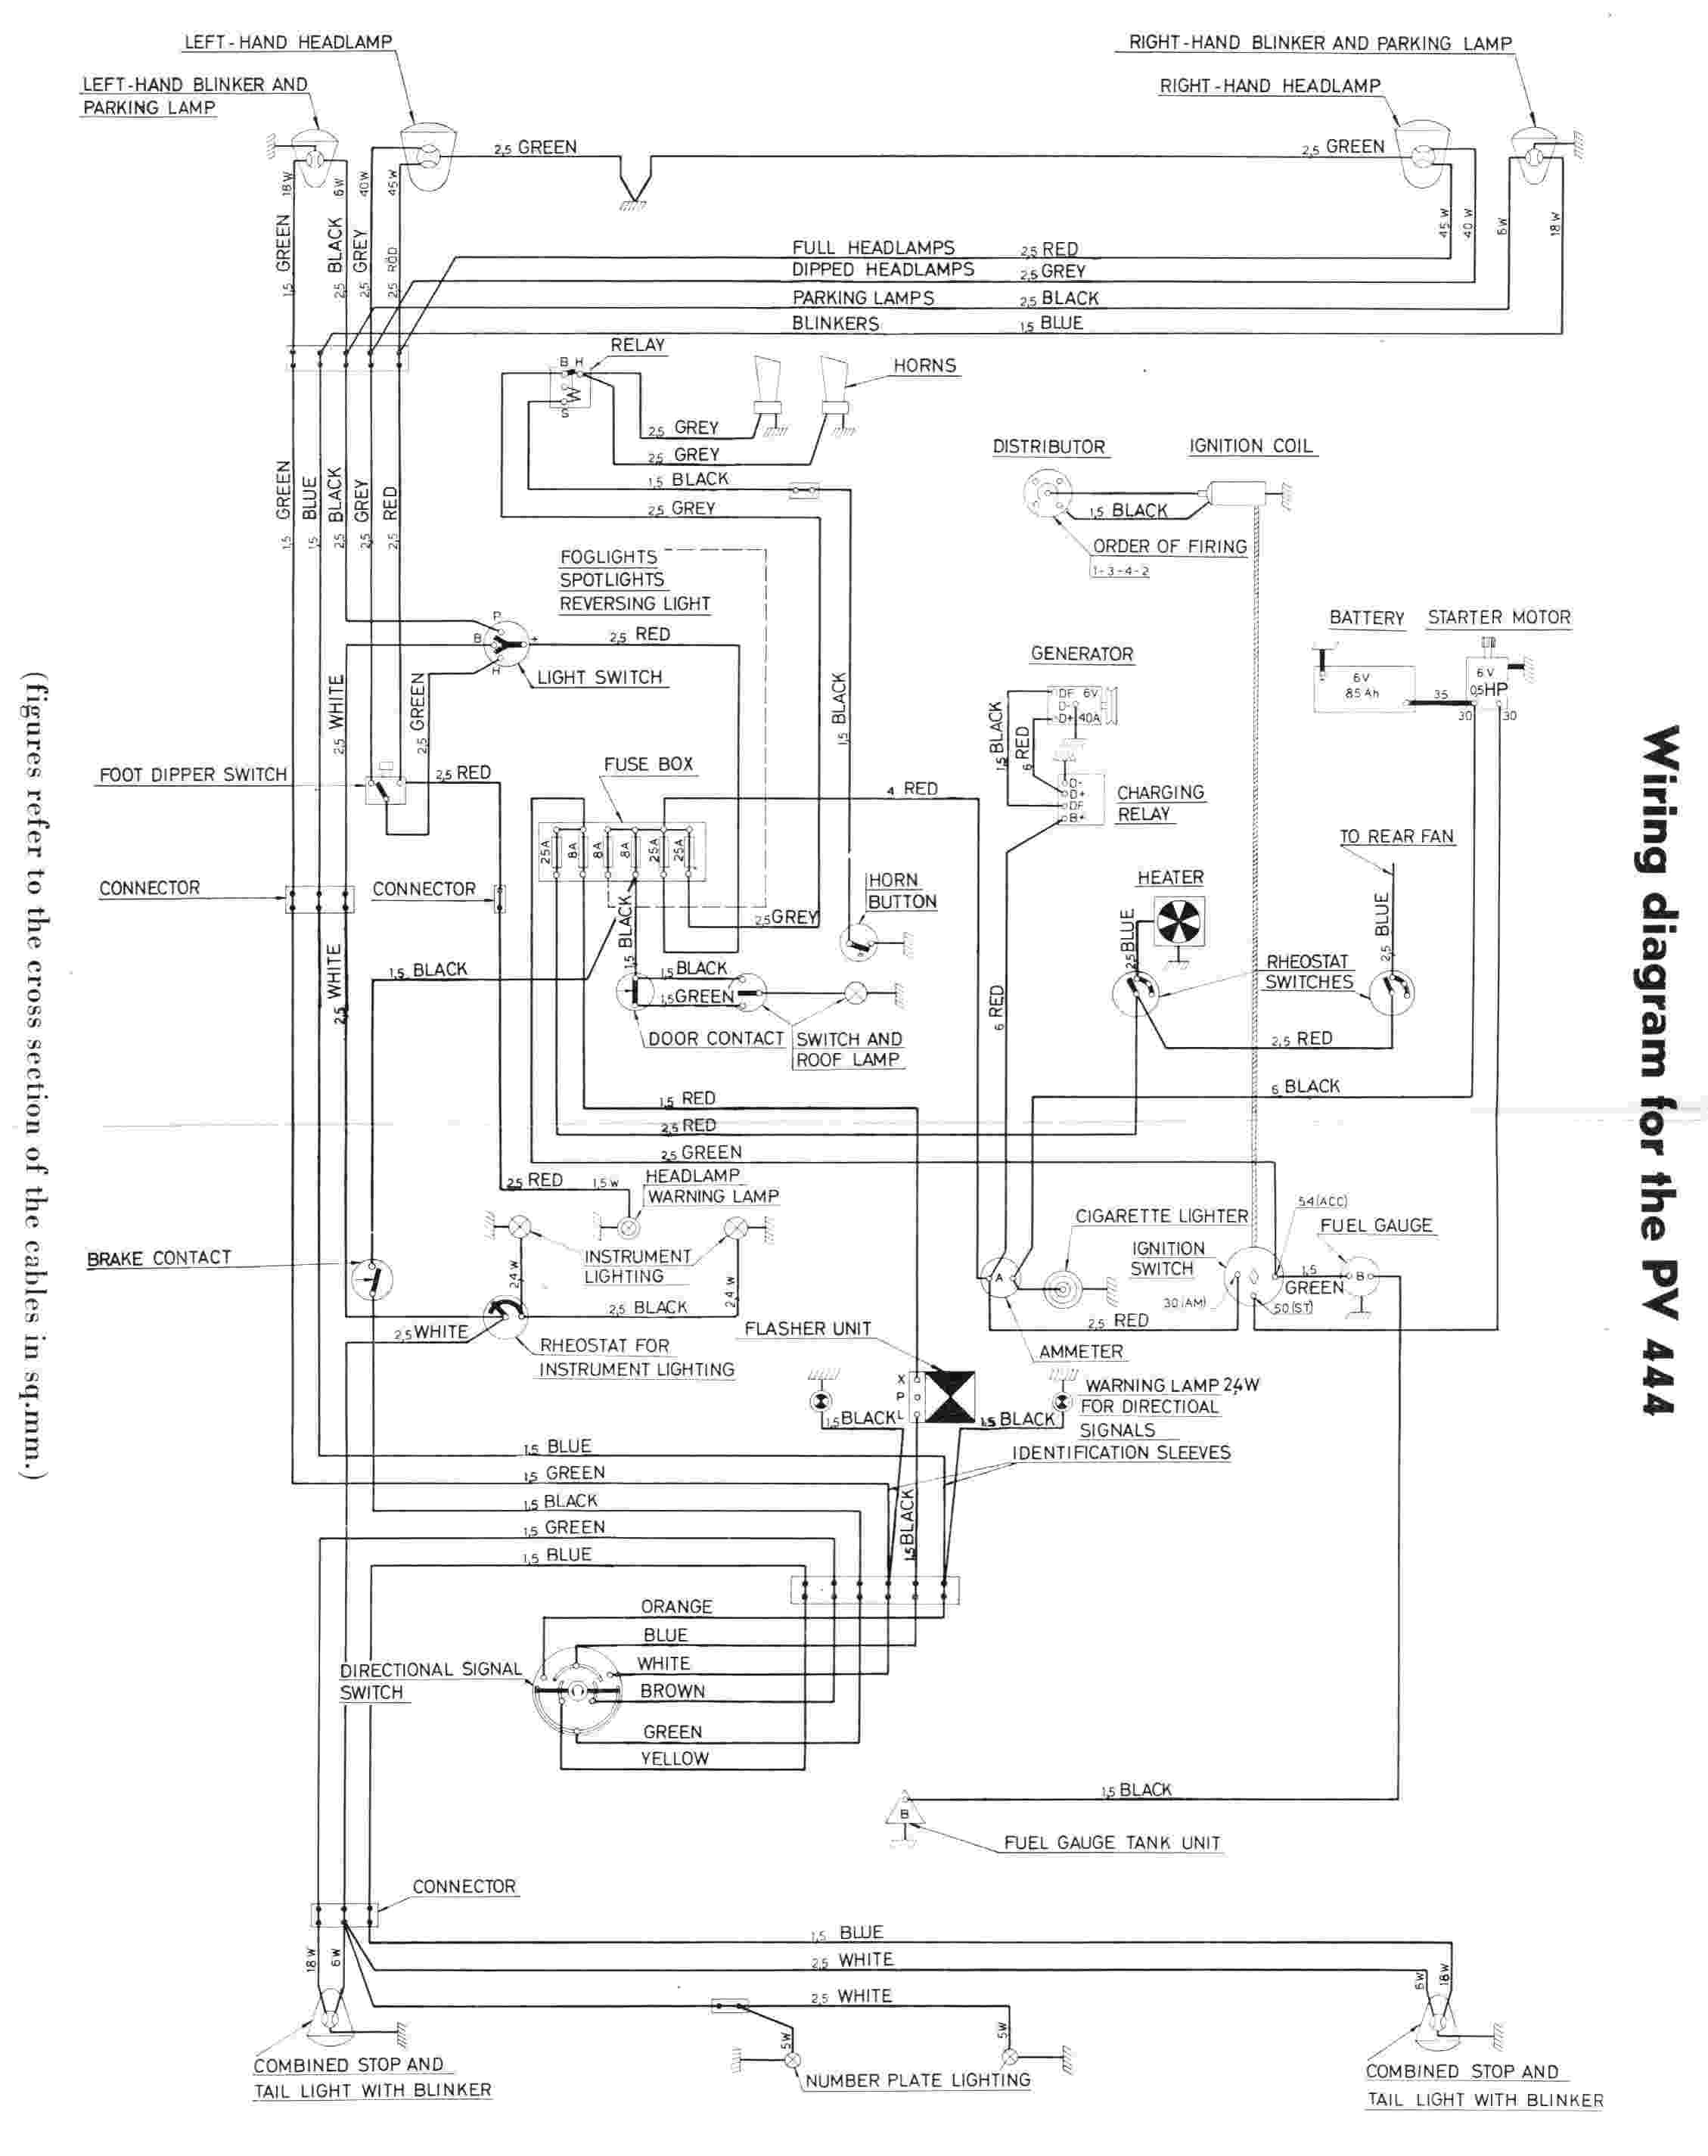 wiring diagram oldsmobile wiring diagrams volvo wiring diagrams 1997 volvo v70 electrical diagram volvo amazon wiring diagram [ 2258 x 2850 Pixel ]